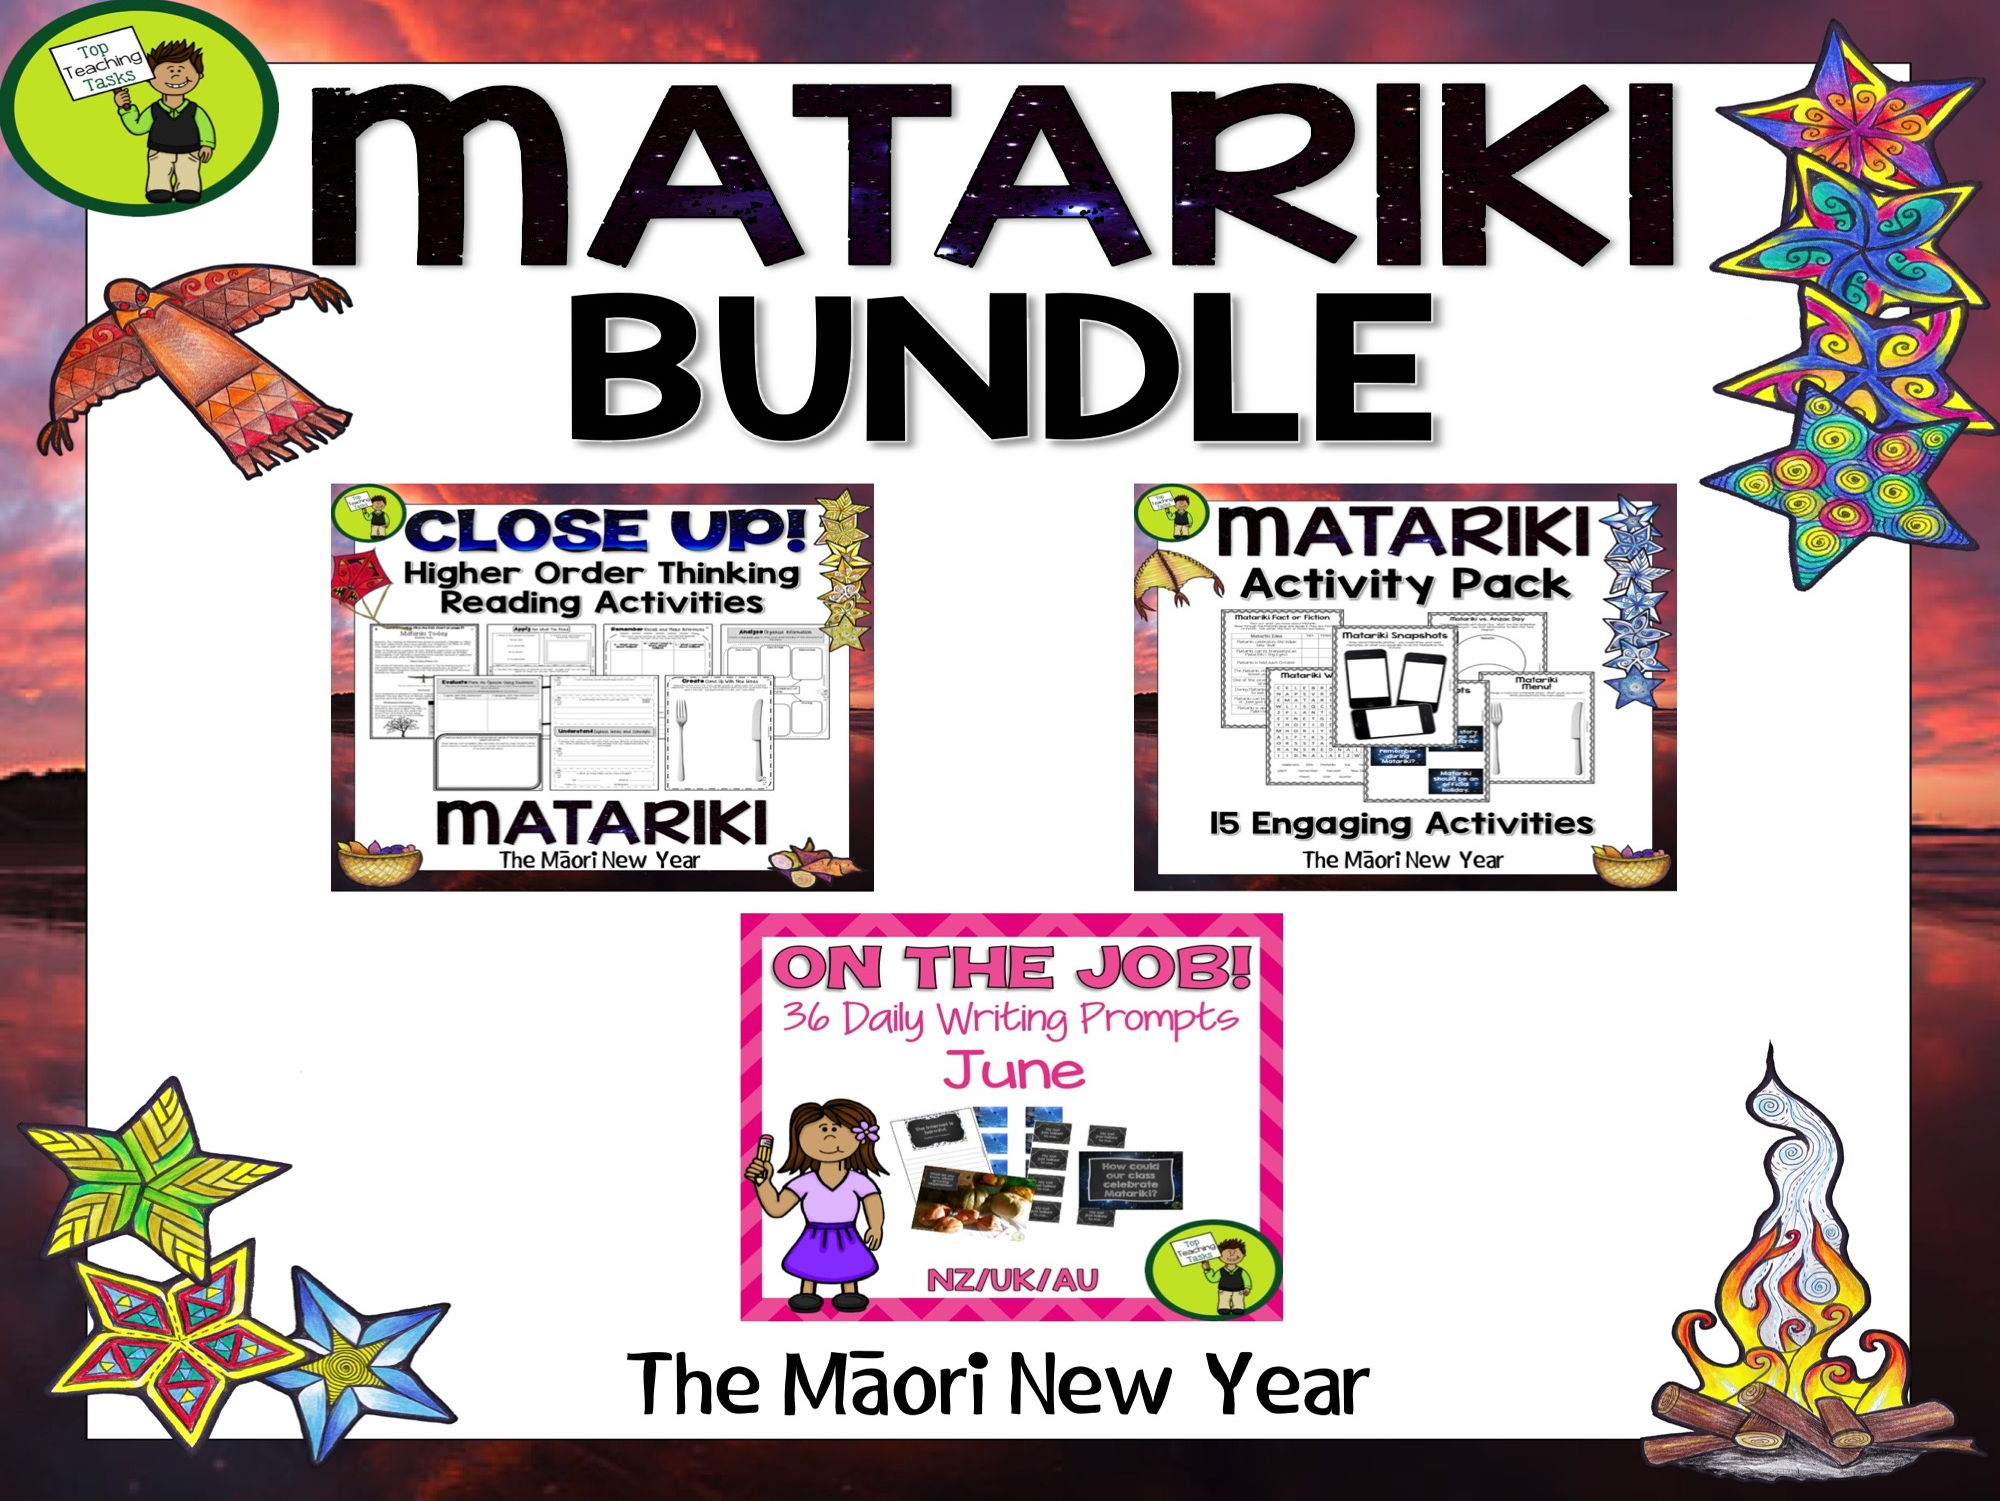 Matariki Bundle - Matariki Literacy Pack - Reading, Writing, Creative Thinking